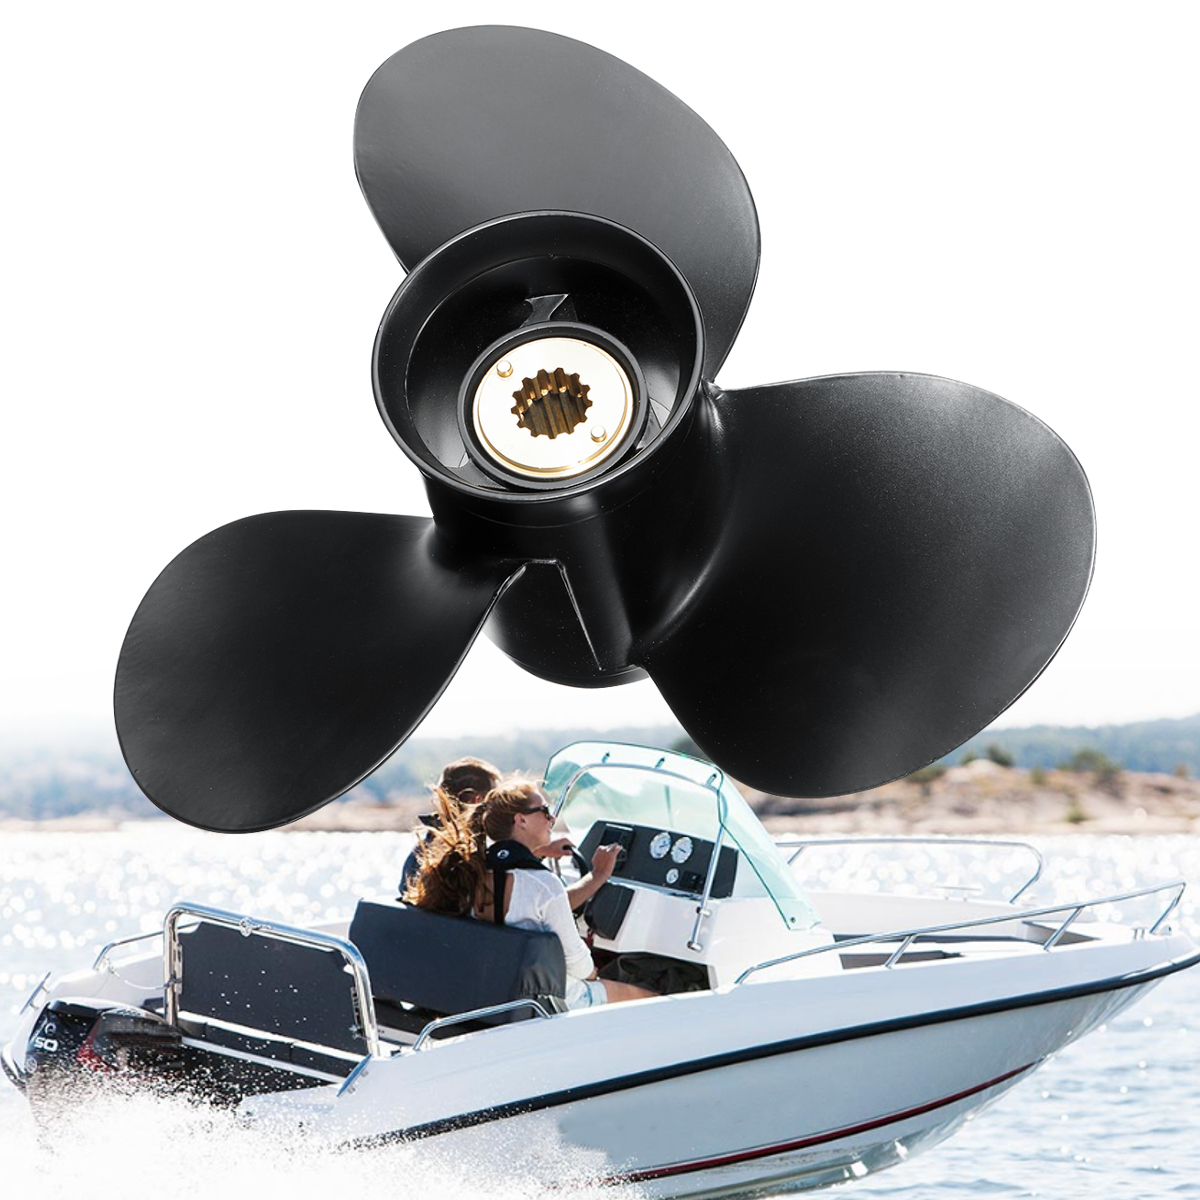 48-73134A40 For Mercury Engine 25-70HP 10 5/8 x 12 Outboard Propeller 3 Blades 13 Tooth Spline 270mm Boat Accessories Aluminum цены онлайн